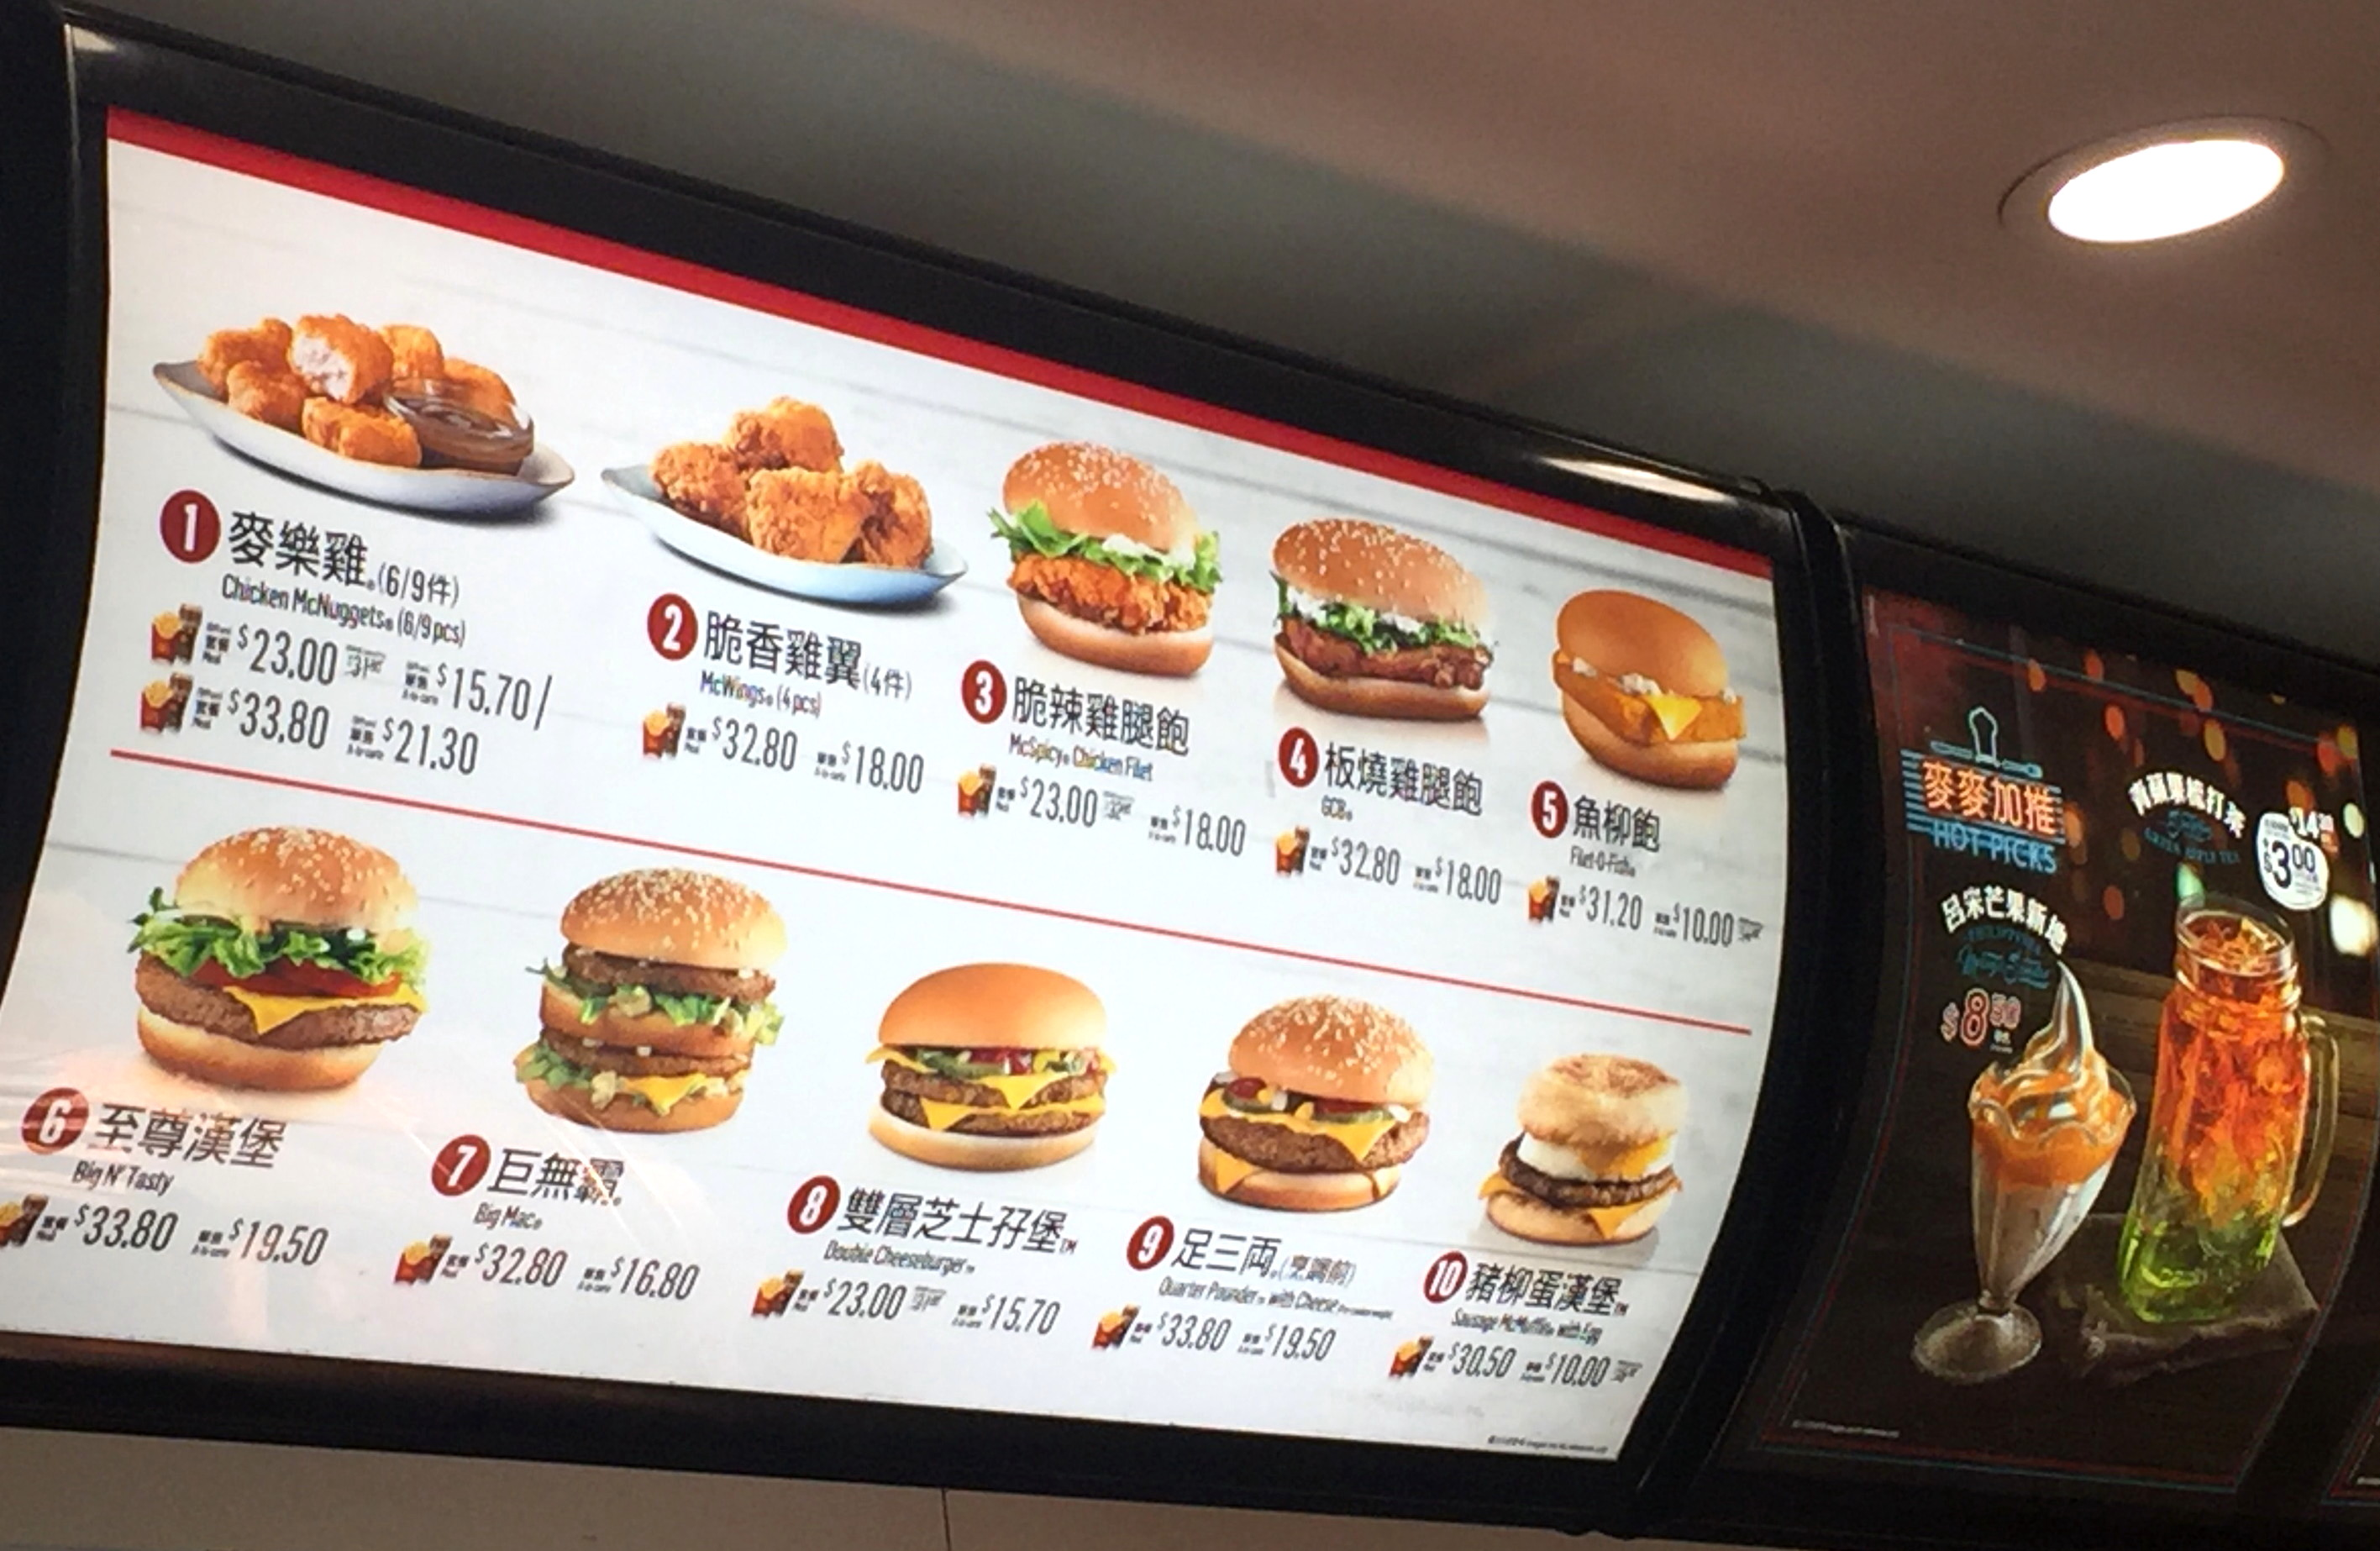 McDonald's menu in Hong Kong